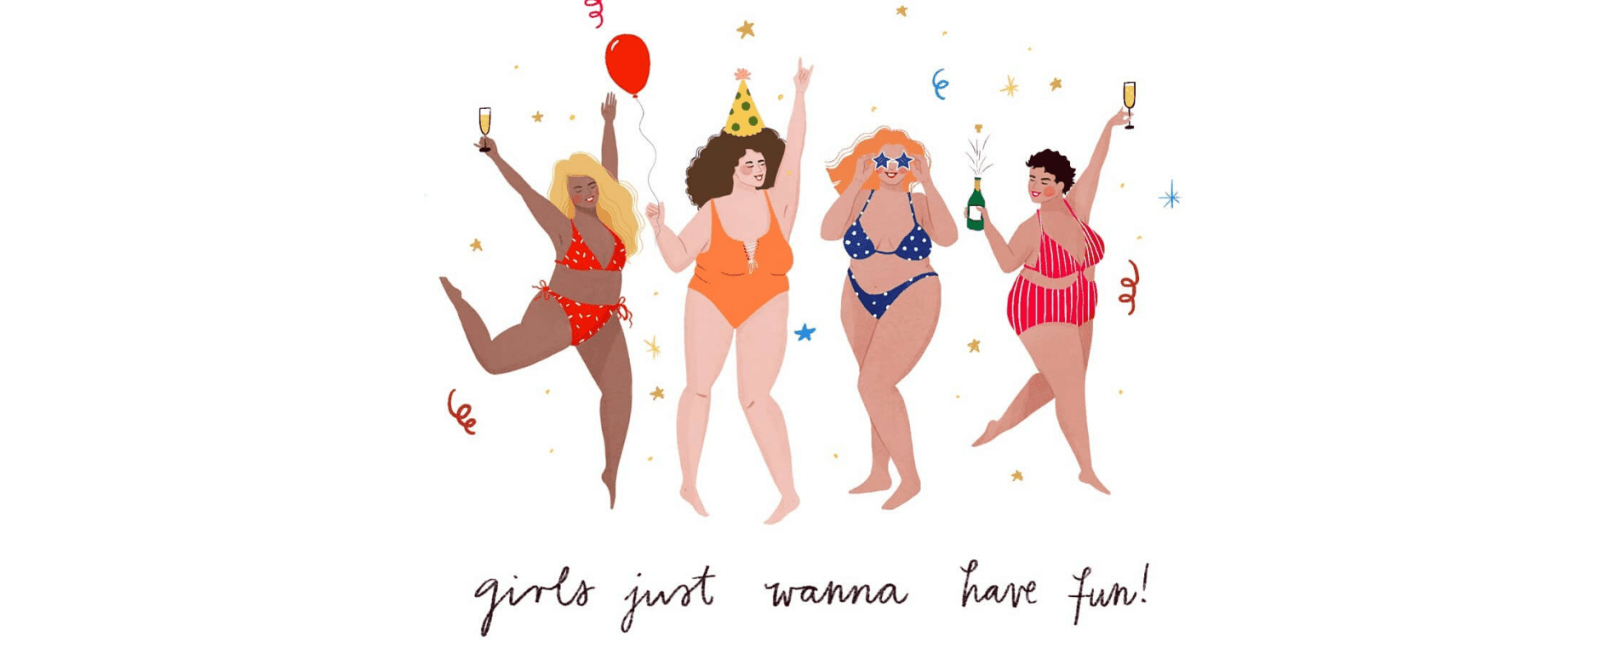 Galentine's day - why it is important to appreciate your gal pals - The Daily Pretty